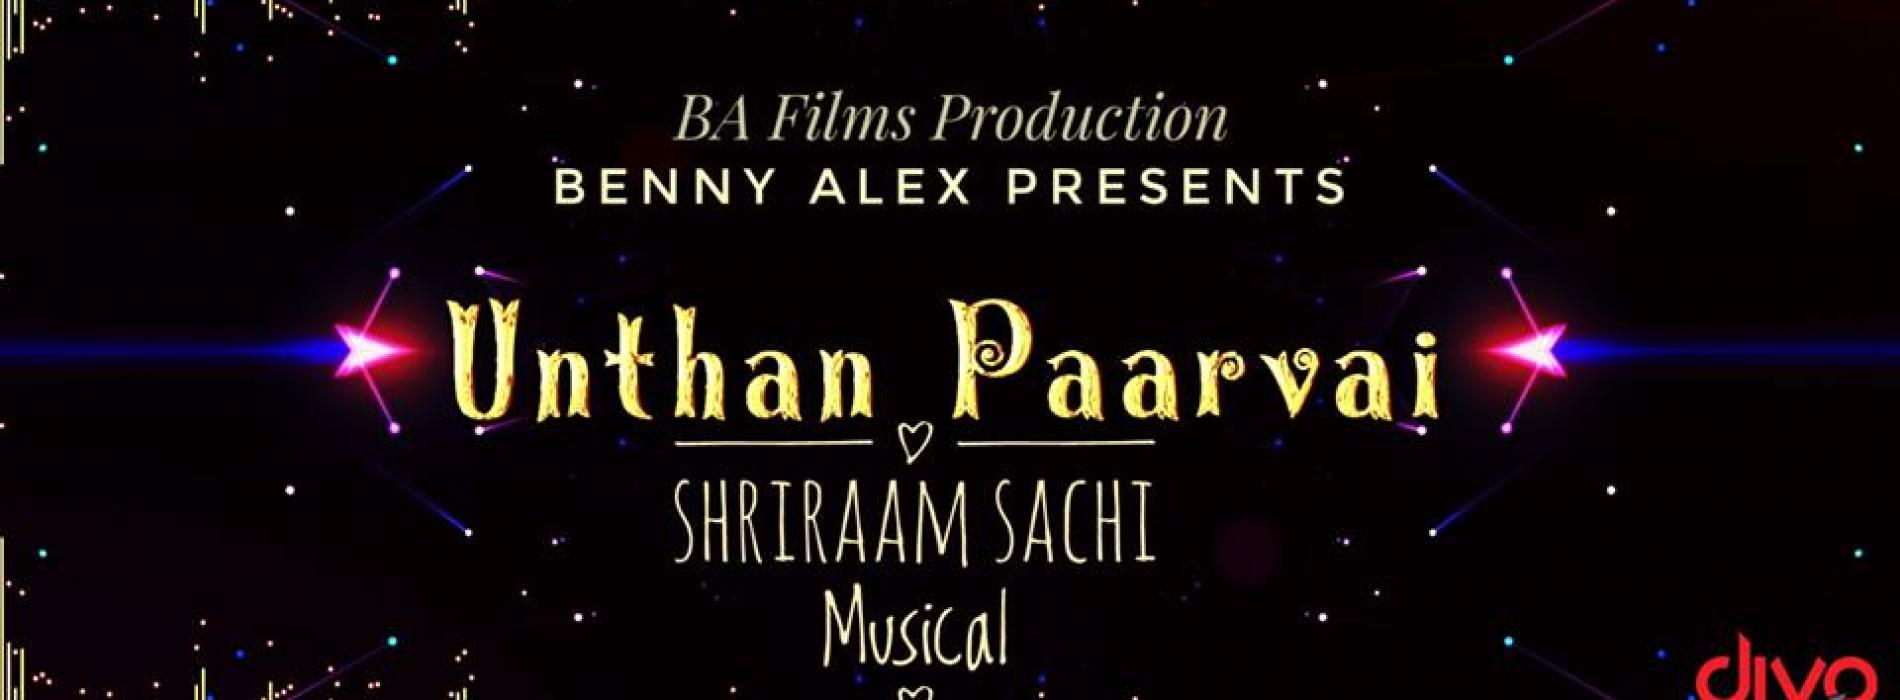 Unthan Paarvai – Official Lyric Video | Shriraam Sachi | Benny Alex | BA Films Production